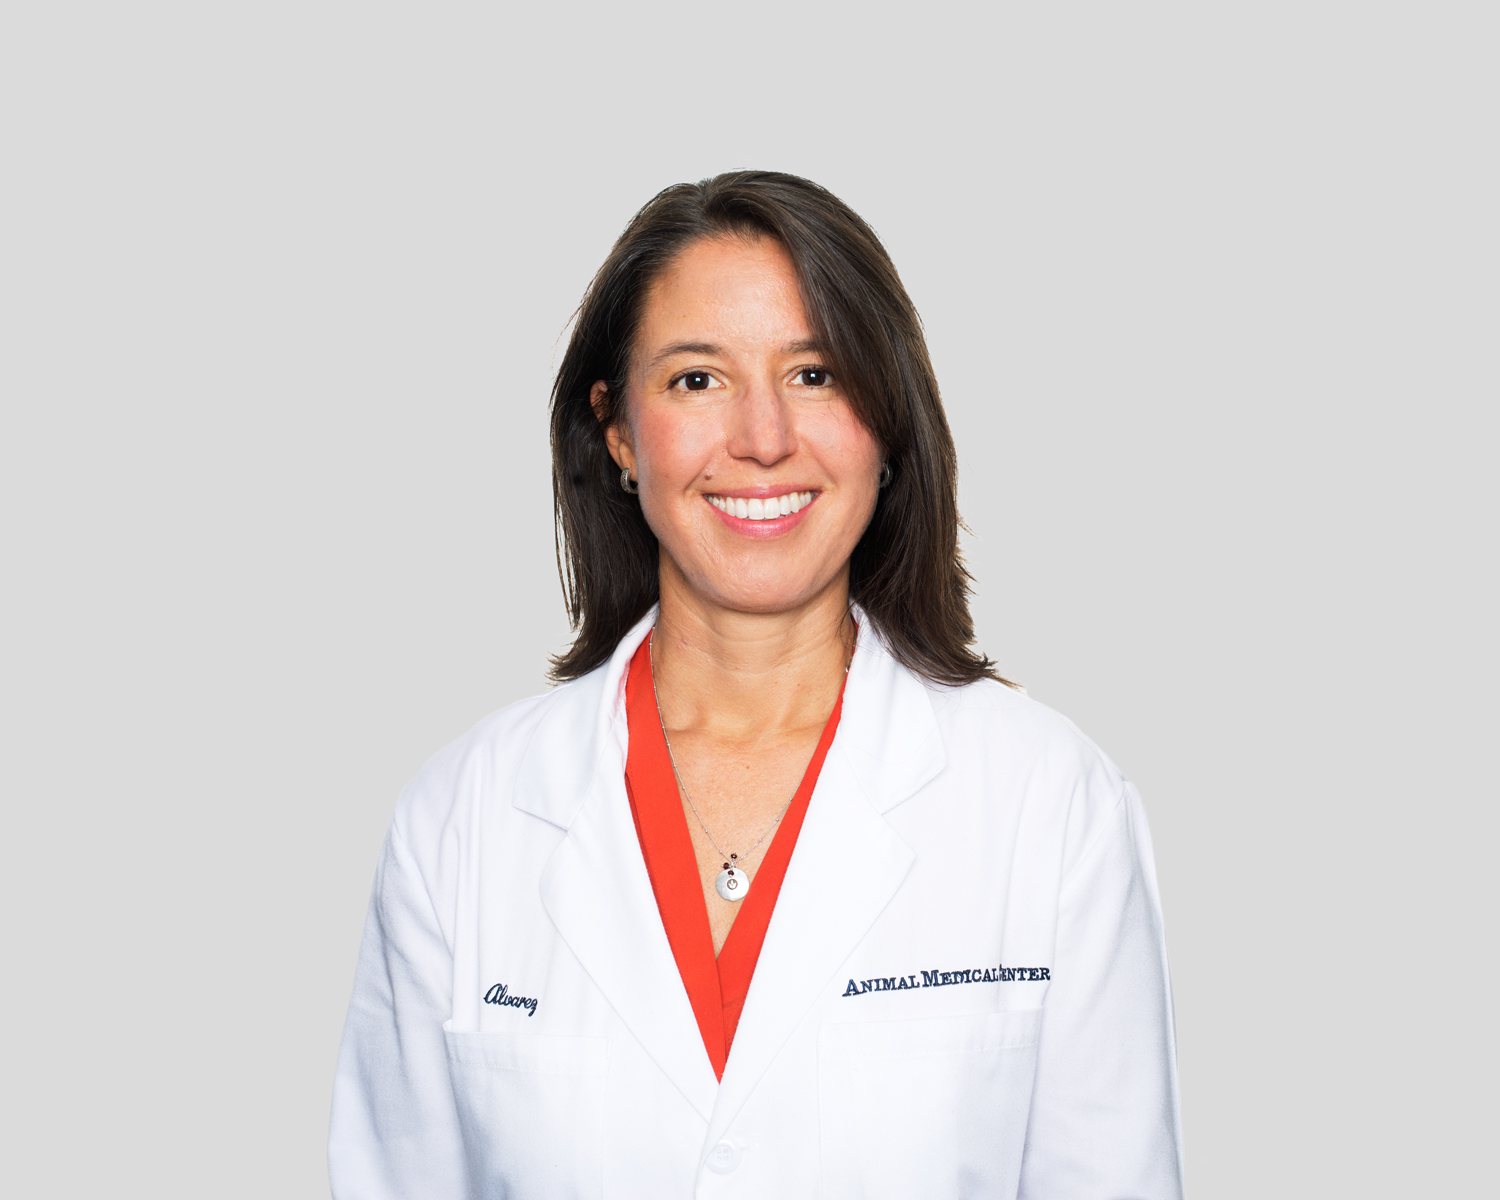 Dr. Leilani Alvarez of the Animal Medical Center in New York City